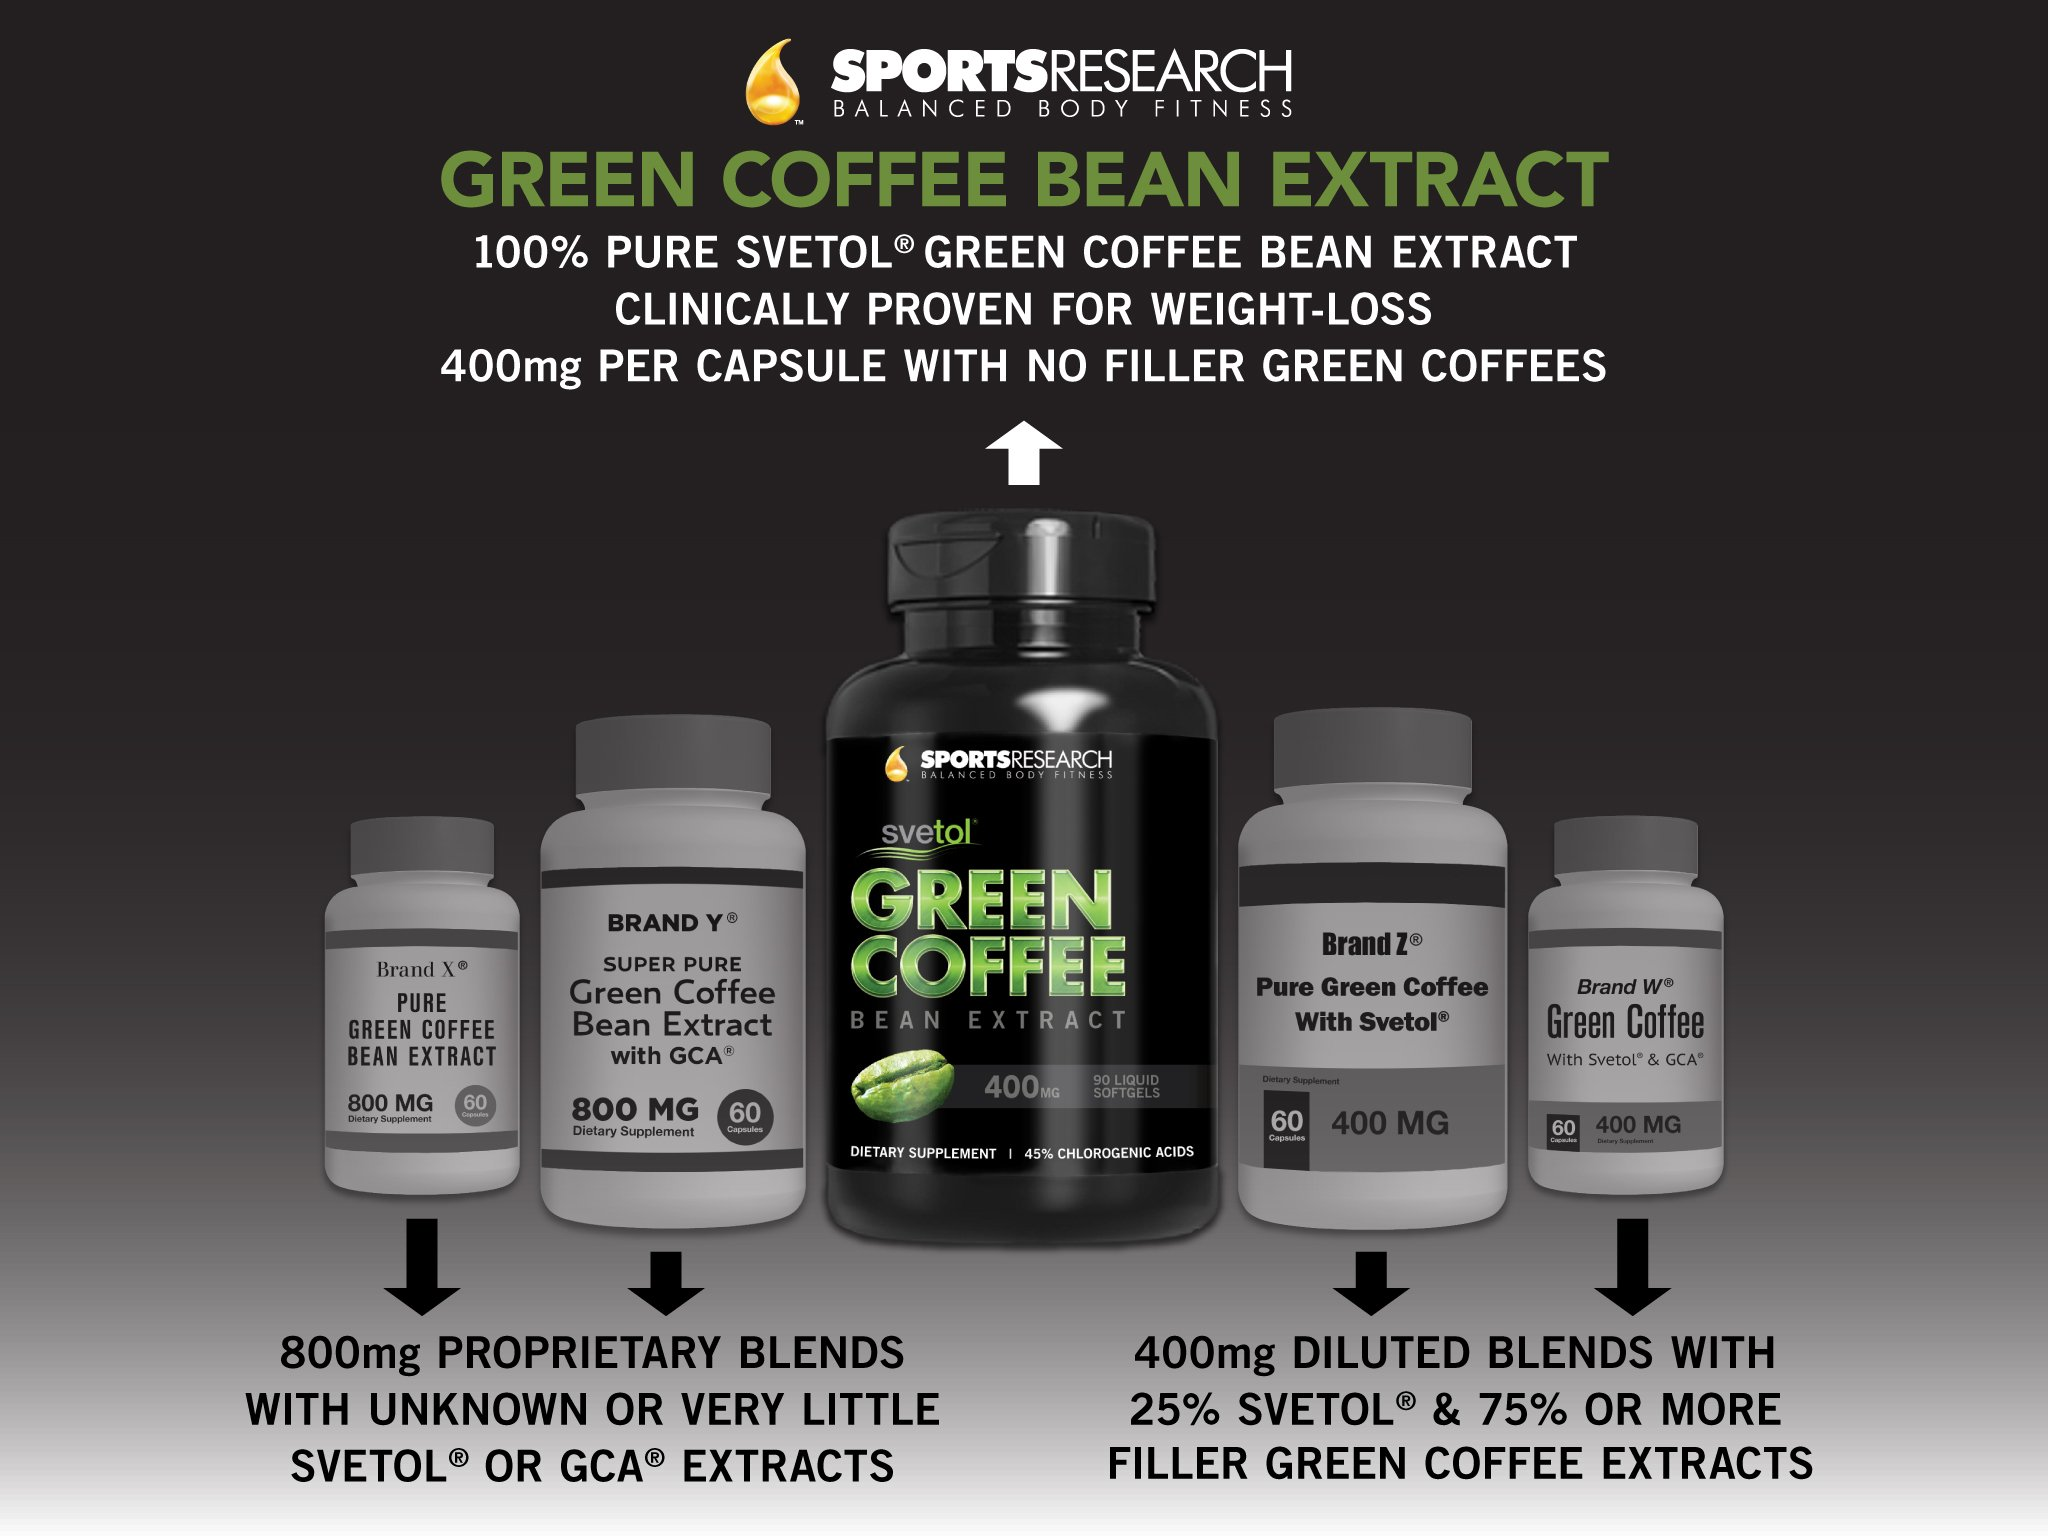 SVETOL Green Coffee Bean Extract, 90 Liquid Softgels with 400mg of Clinically-Proven Svetol Per Cap by Sports Research (Image #11)